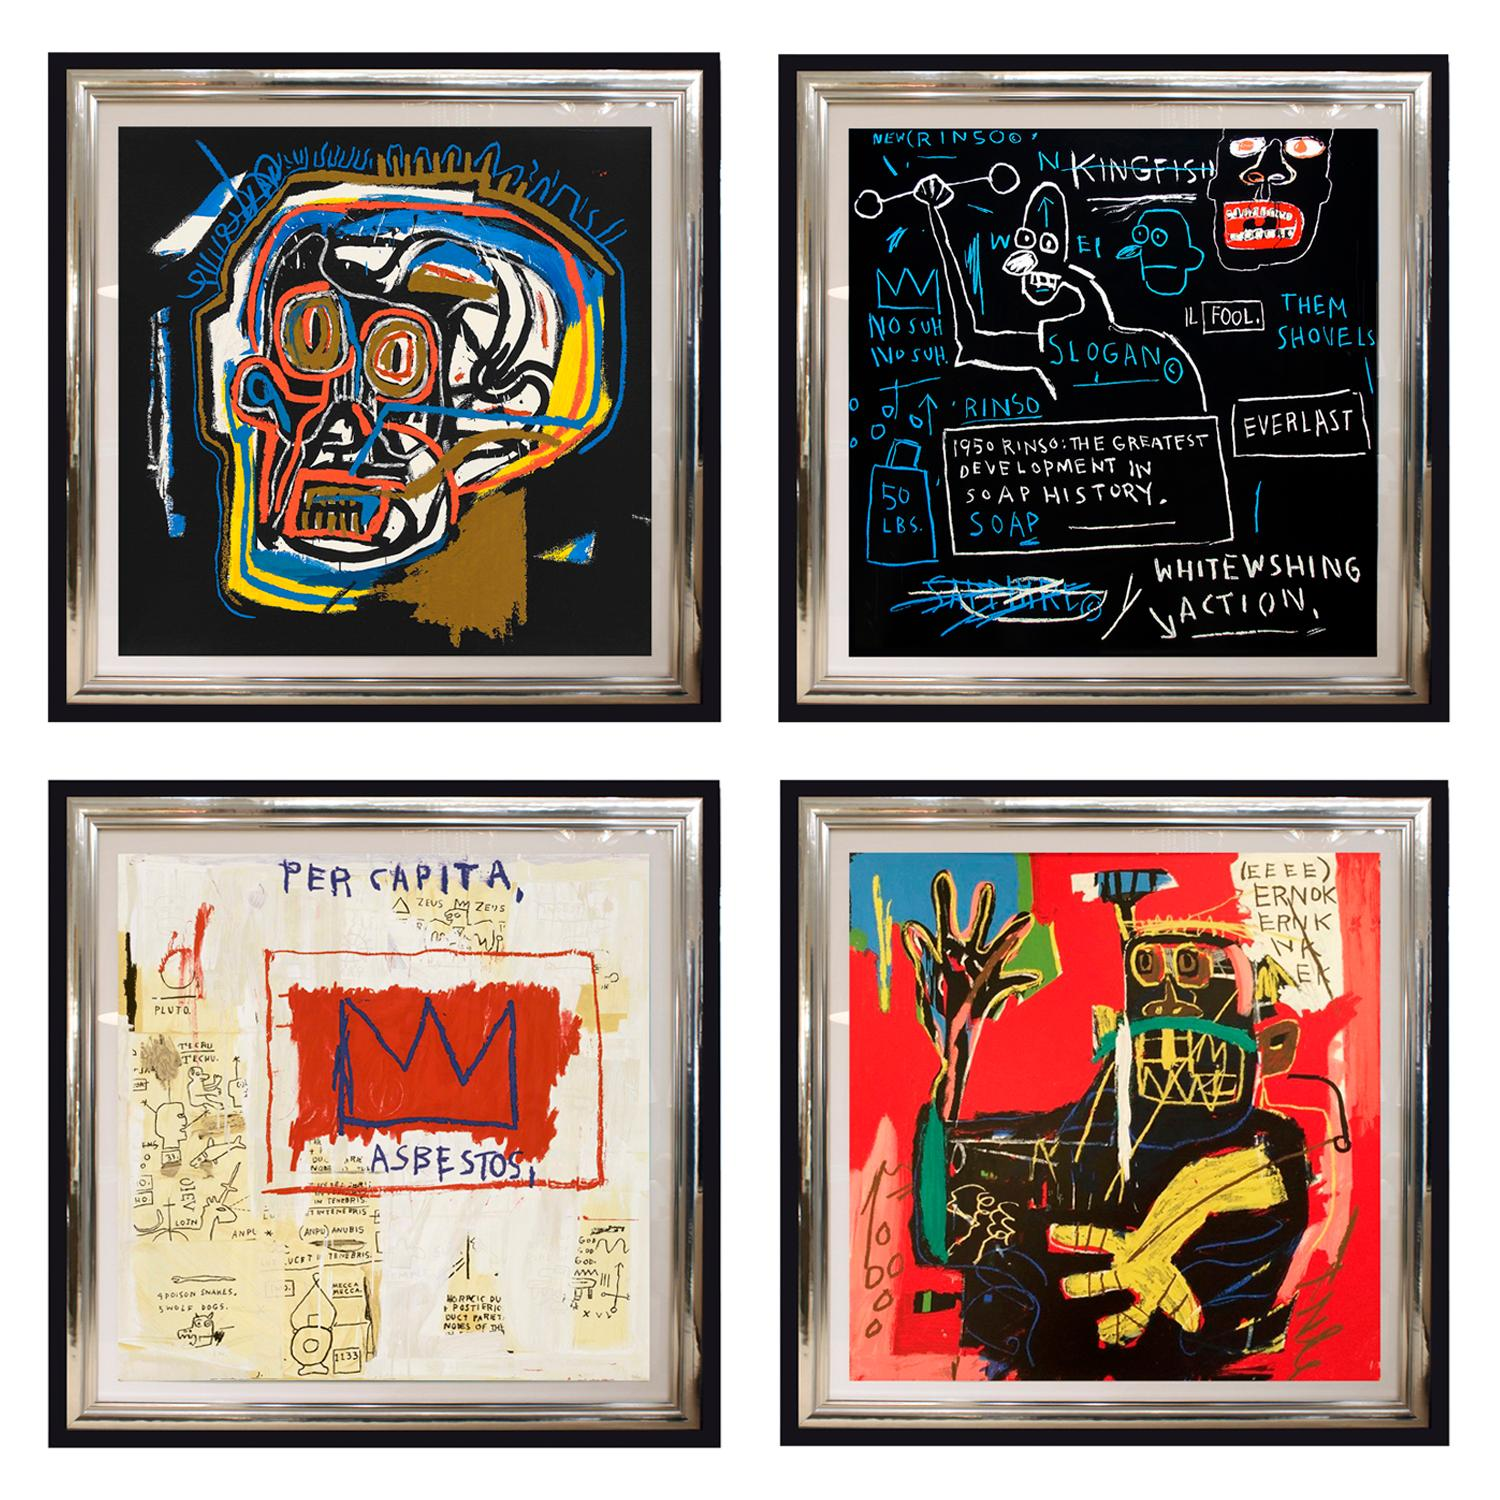 After) Jean-Michel Basquiat, Rare Collectors Set of 4 Screen